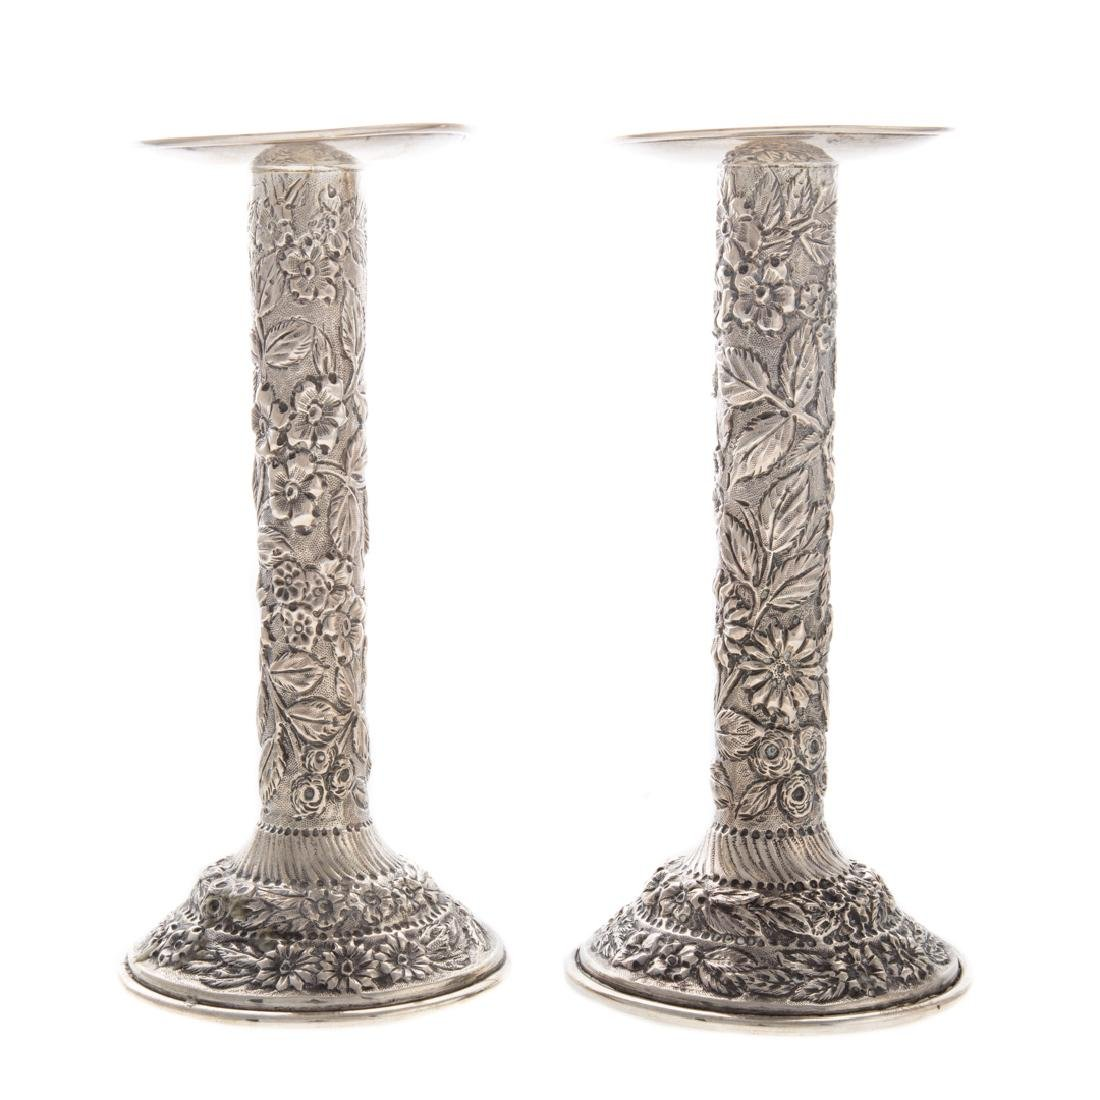 Pair Baltimore Silversmiths sterling candlesticks